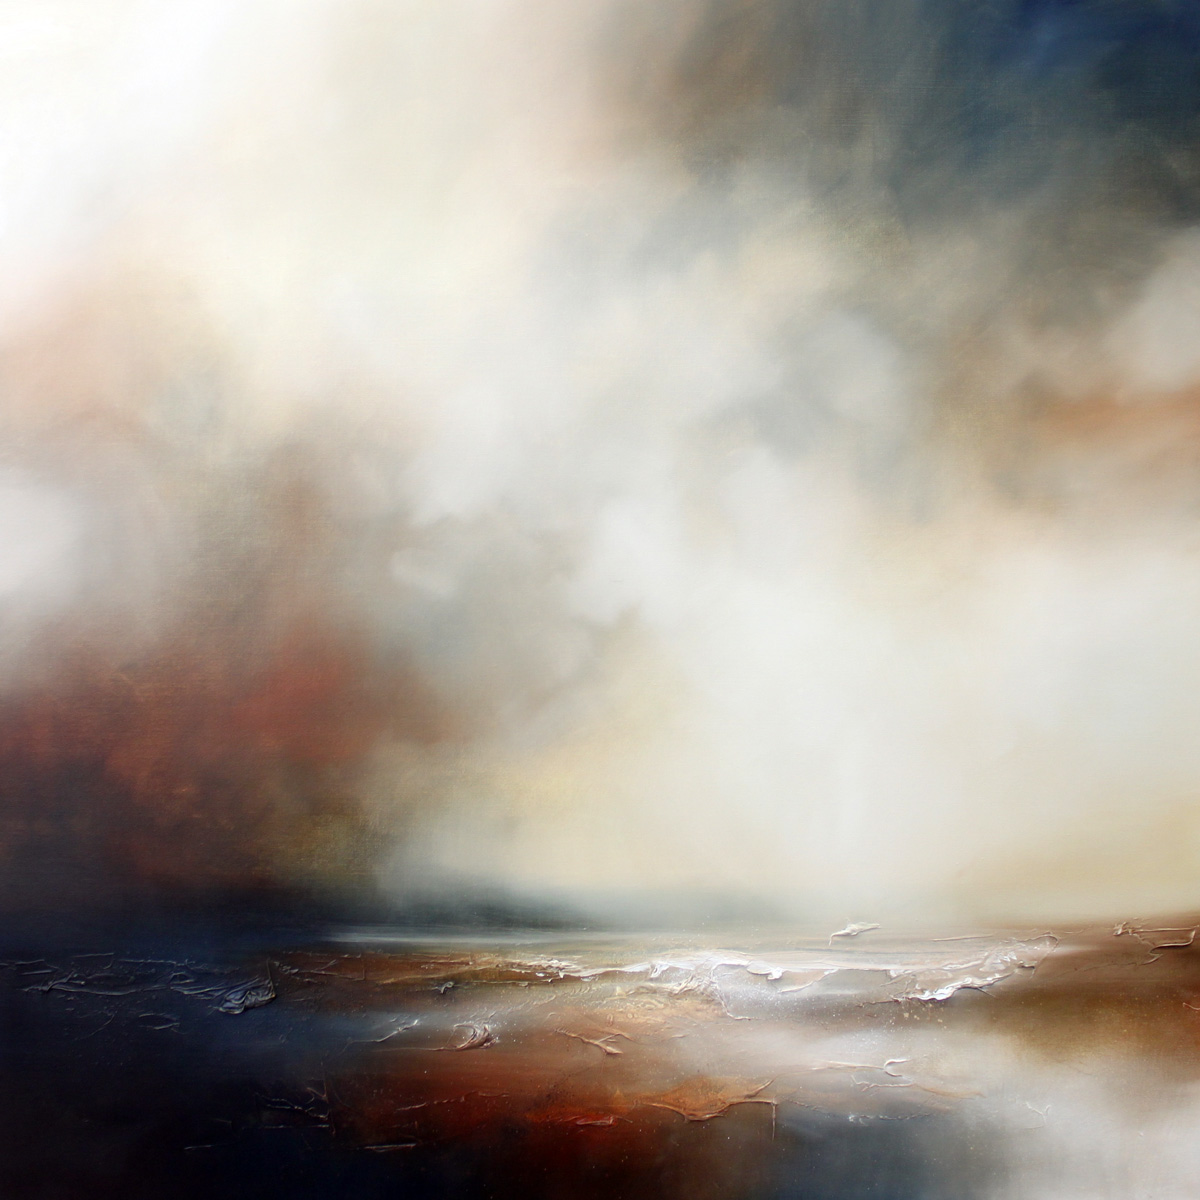 At the Edge of the World 2 Seascape and Landscape Painting